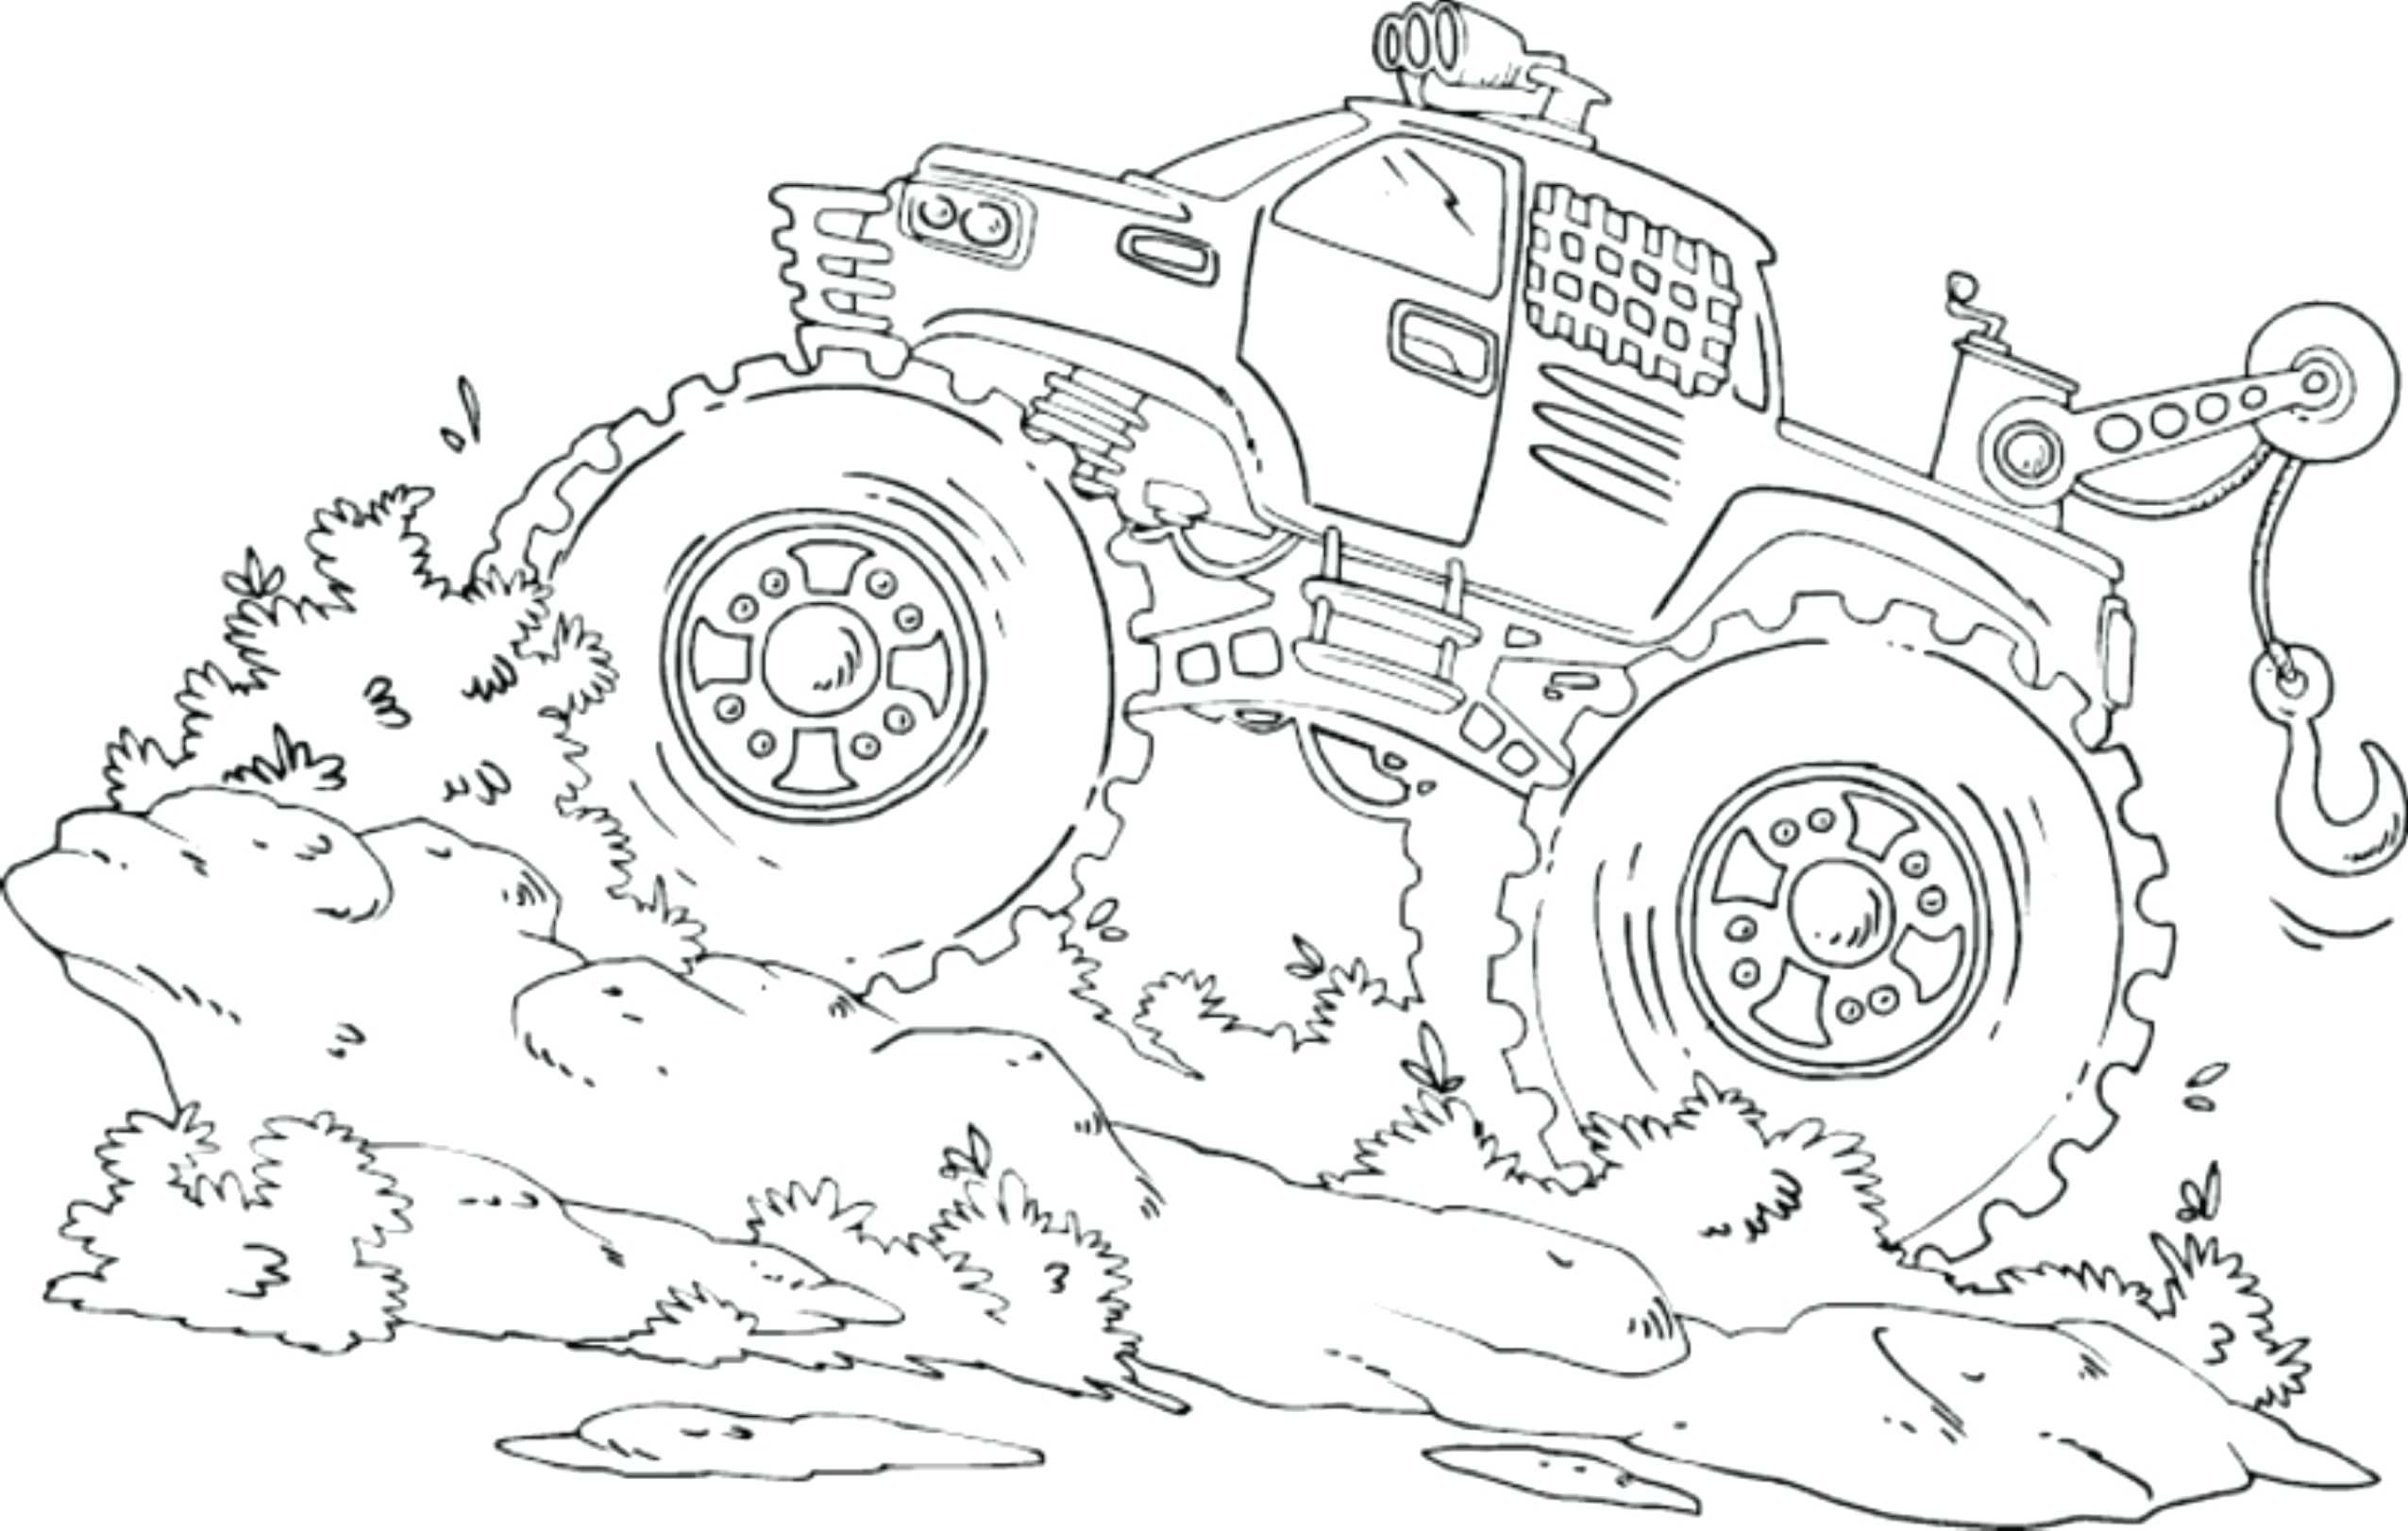 digger drawing at getdrawings free for personal use digger Grave Digger Monster Truck Toys 2551x1622 monster truck coloring pages online le drawing grave digger